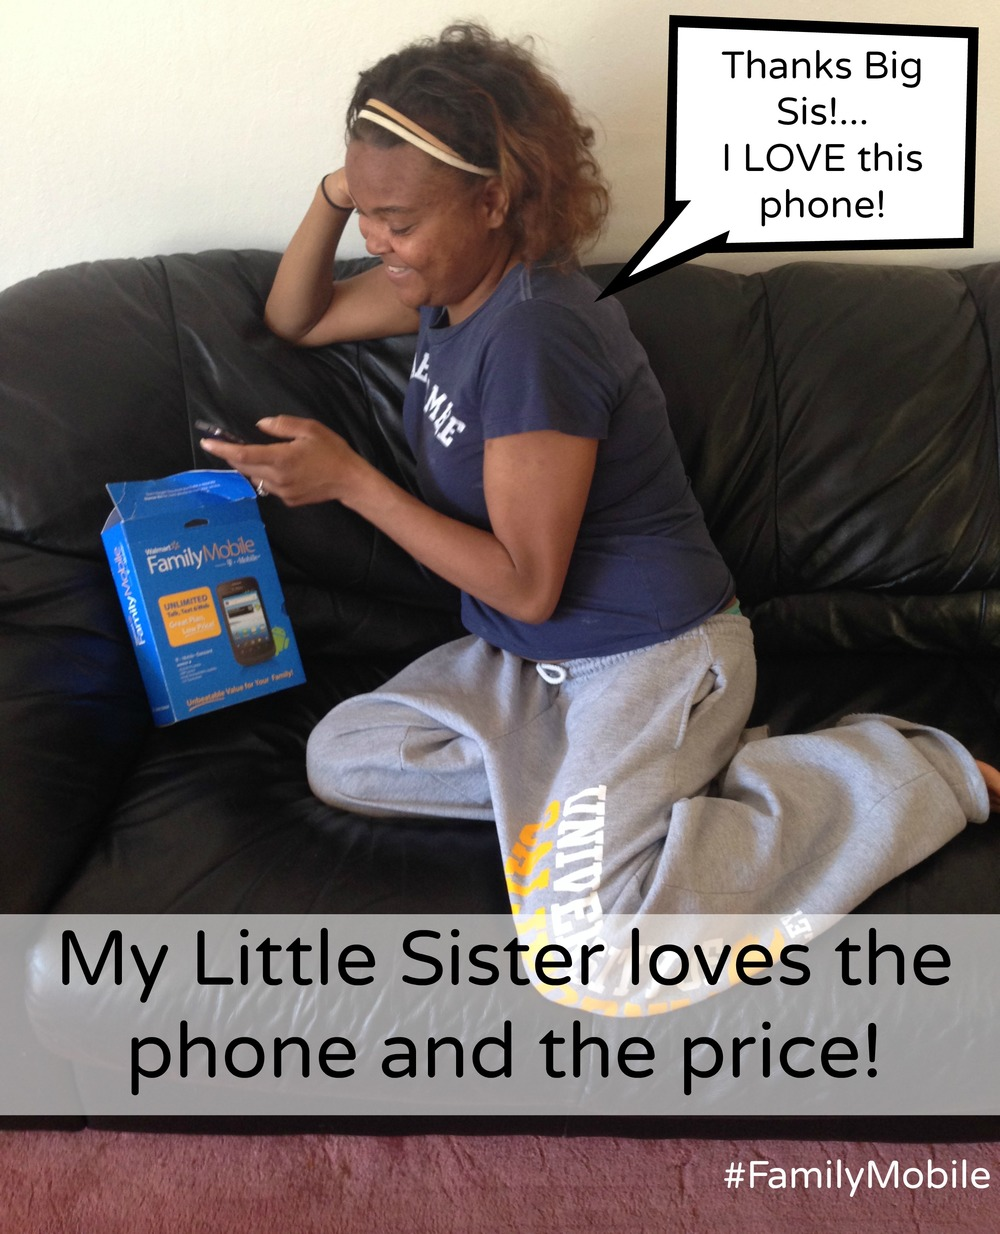 Sharne couch, Lowest Price Unlimited Plan, #FamilyMobile